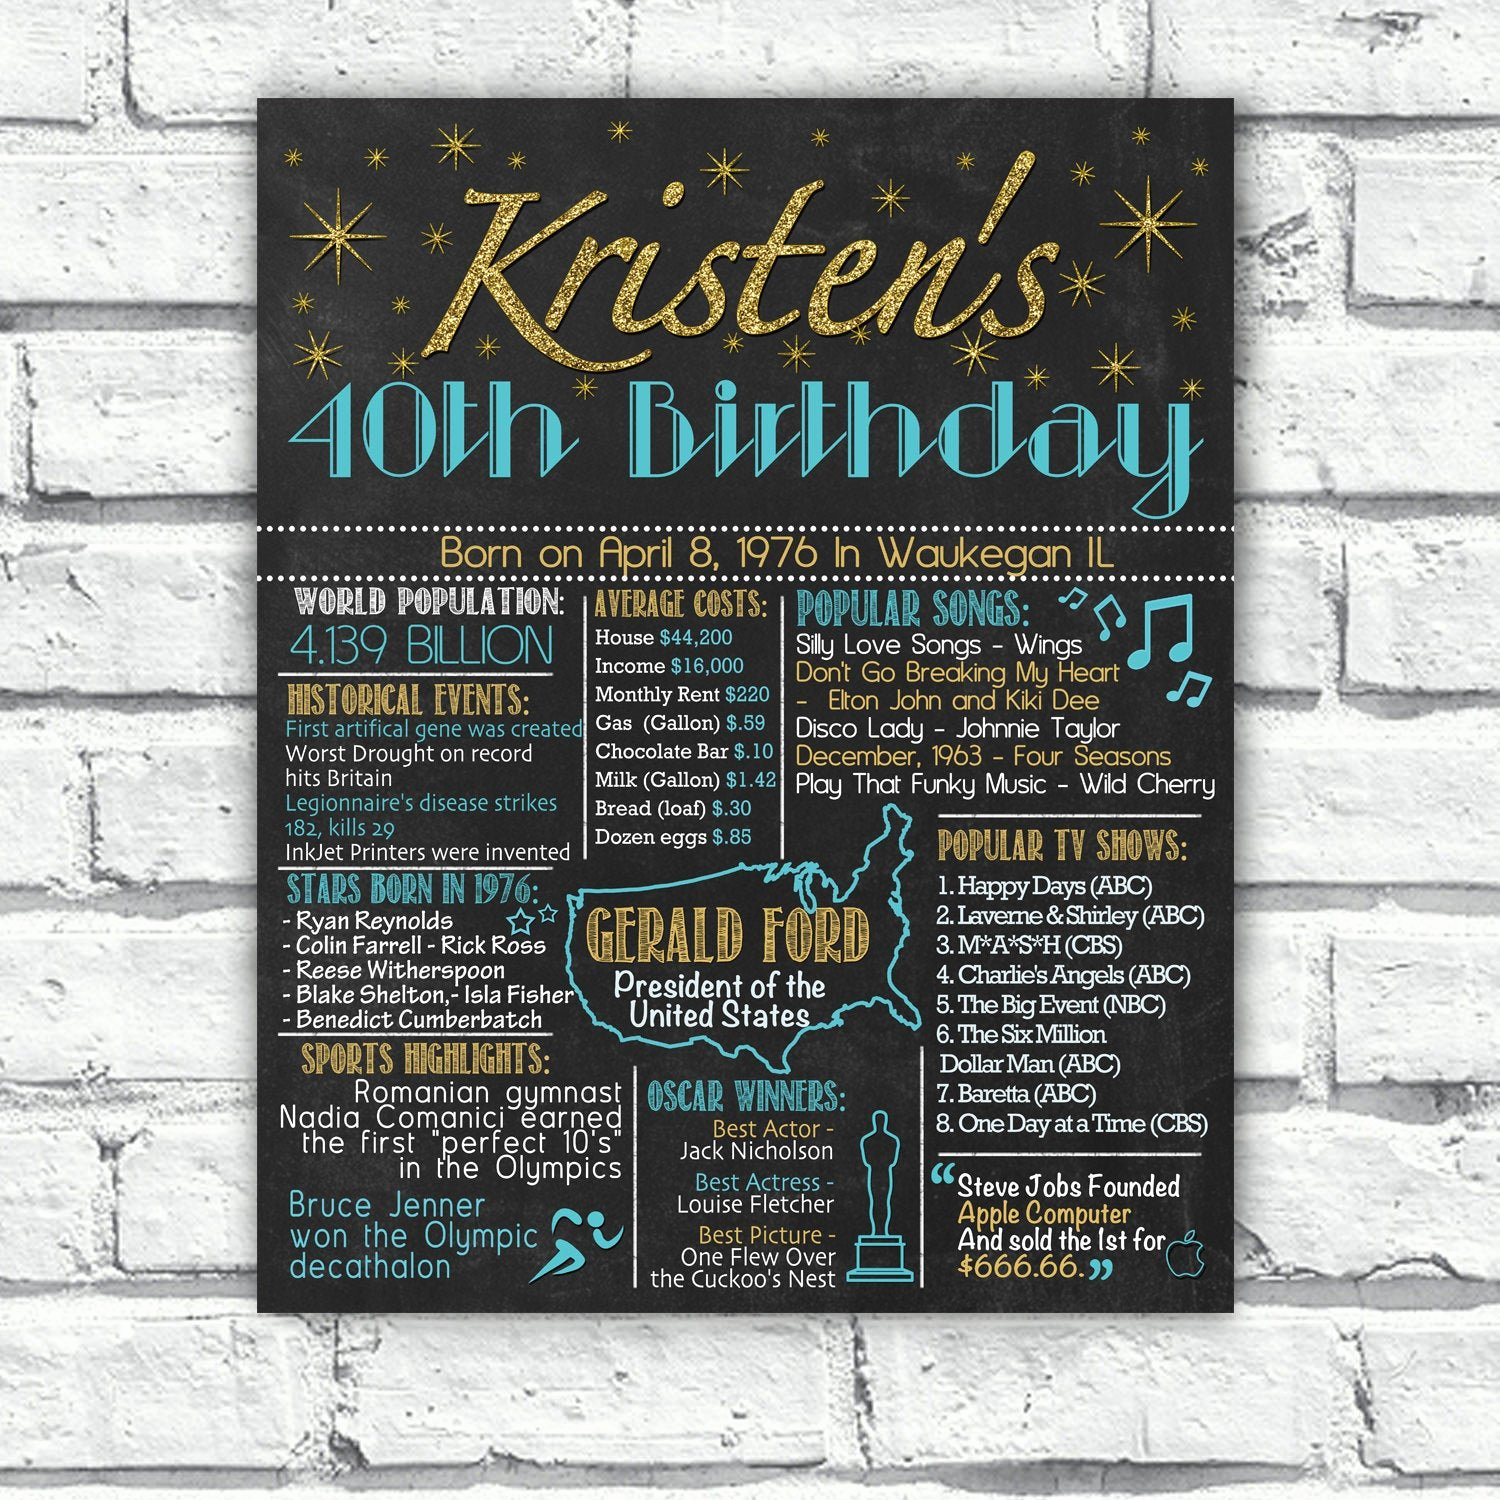 40th Birthday Poster Template Inspirational 40th Birthday Poster 40th Birthday by Letschalkmemories On